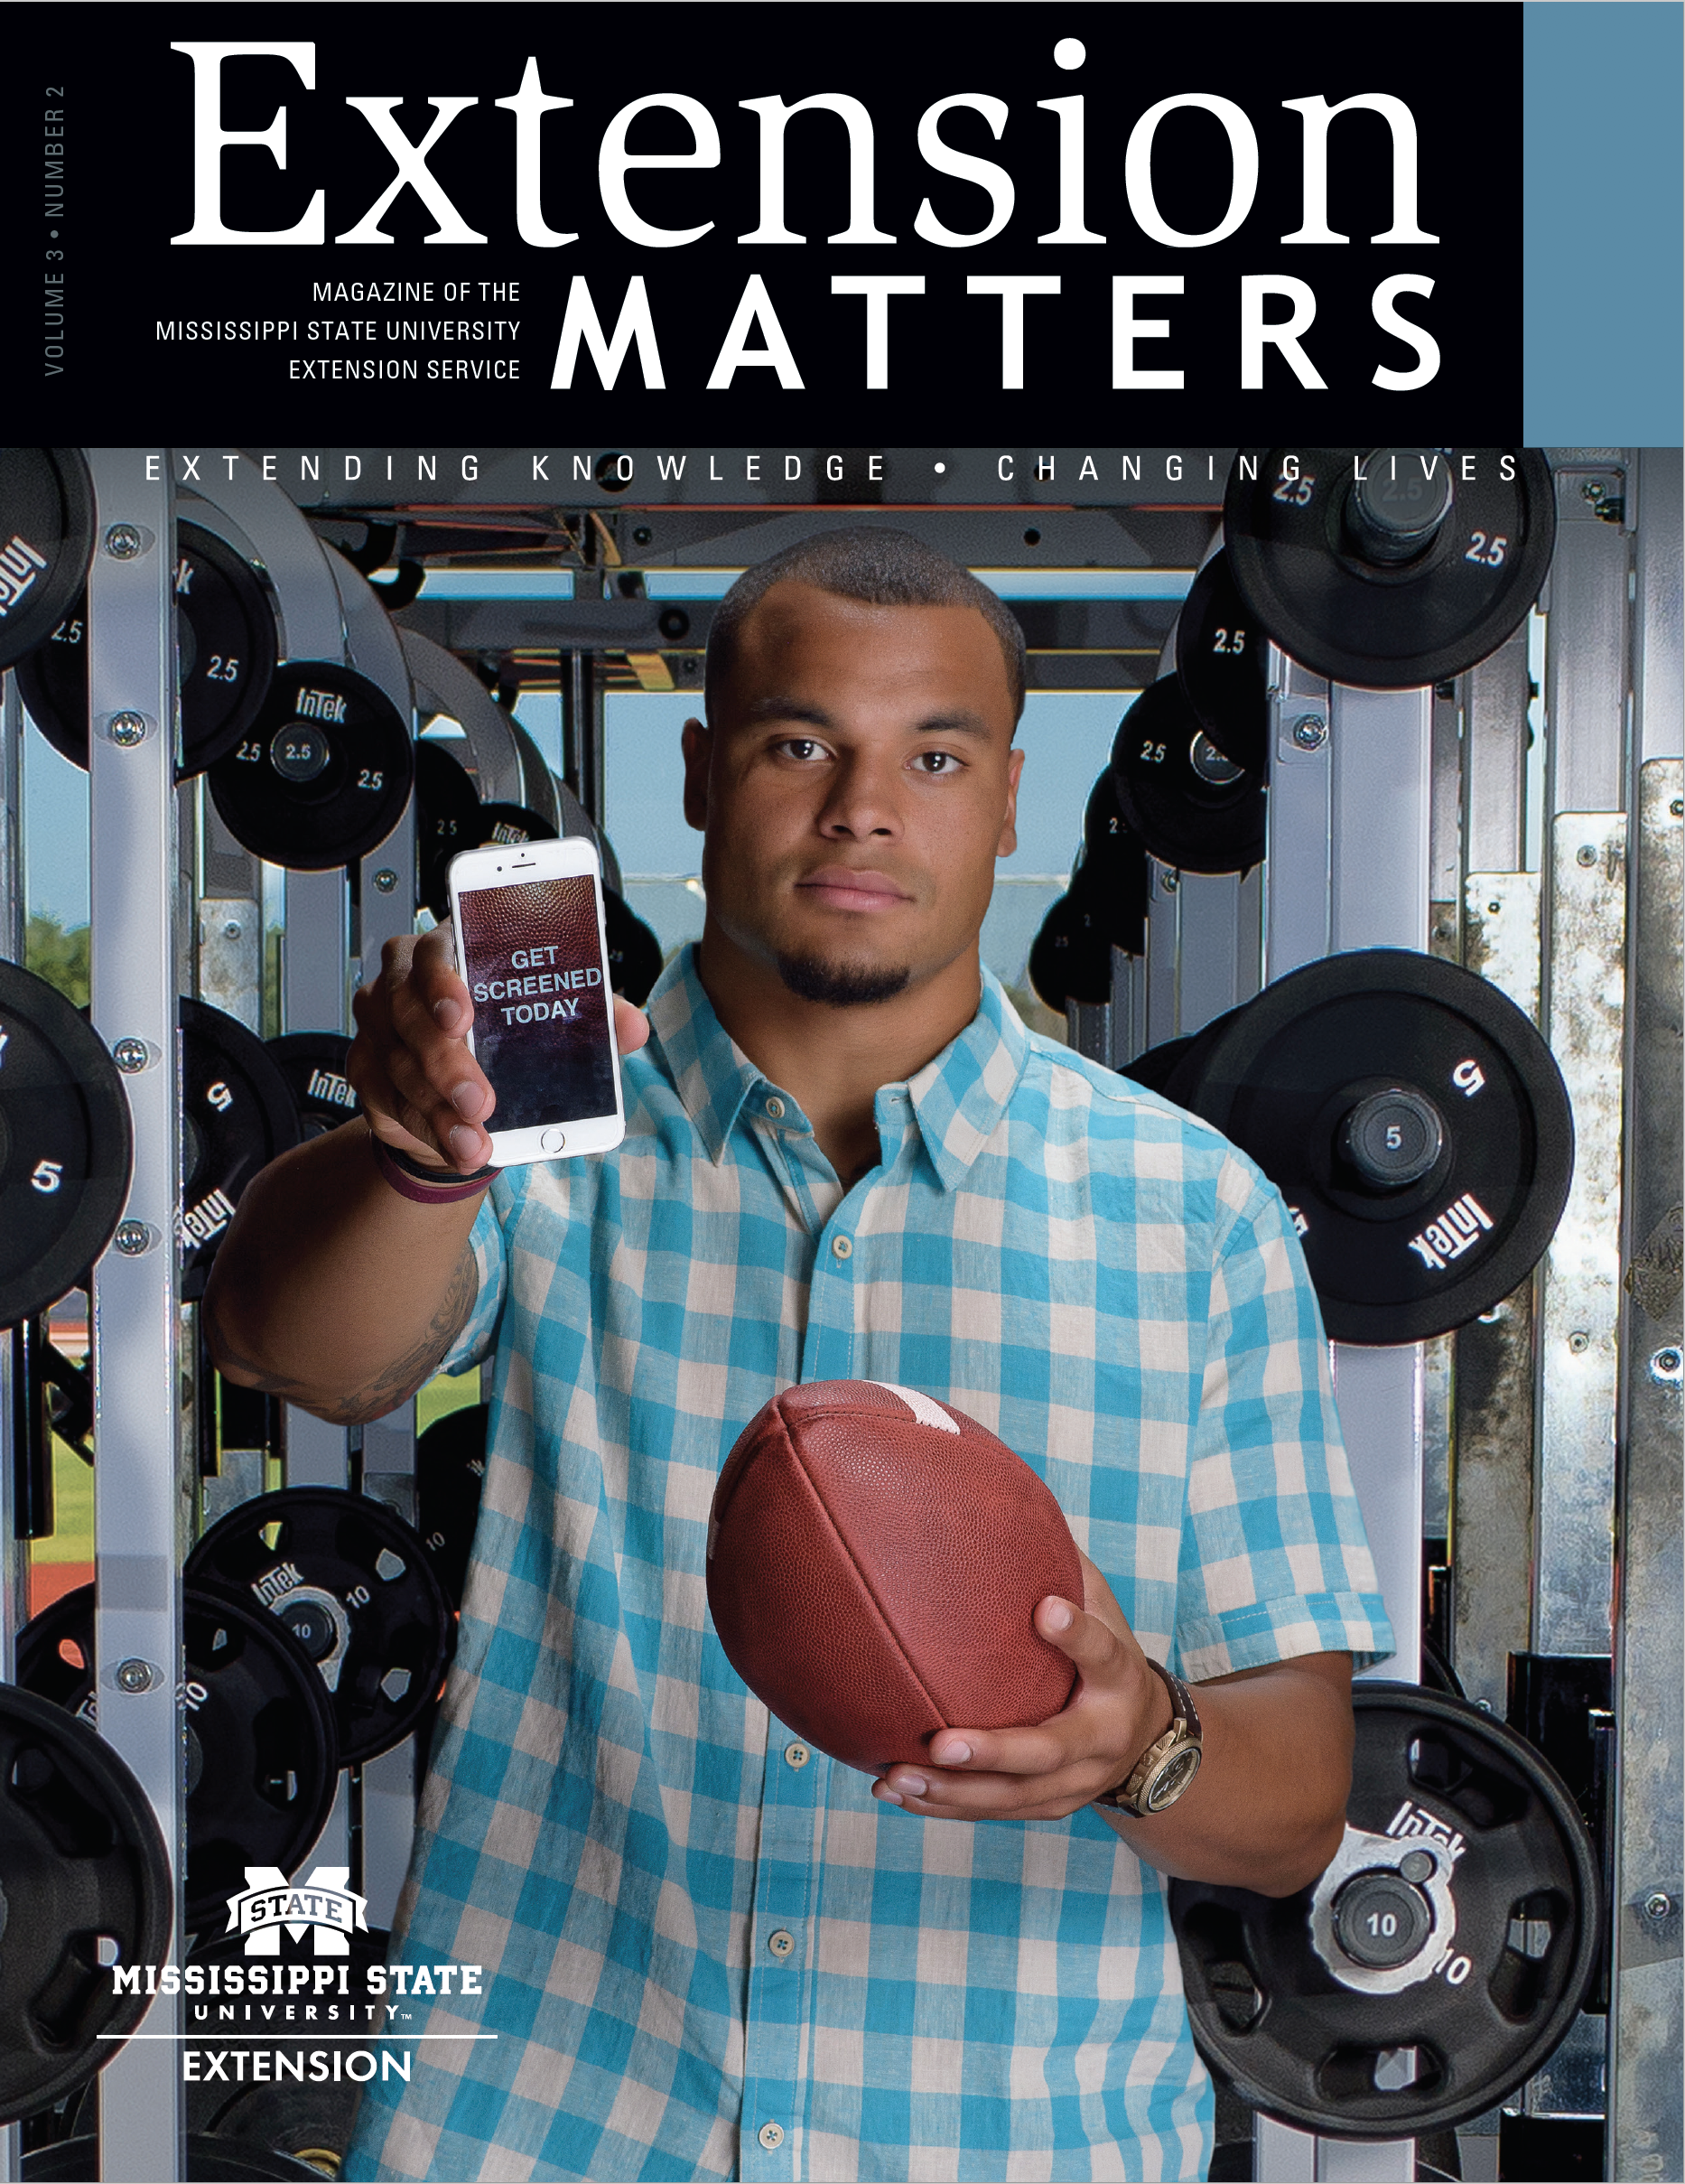 Extension Matters cover volume 3 number 2.